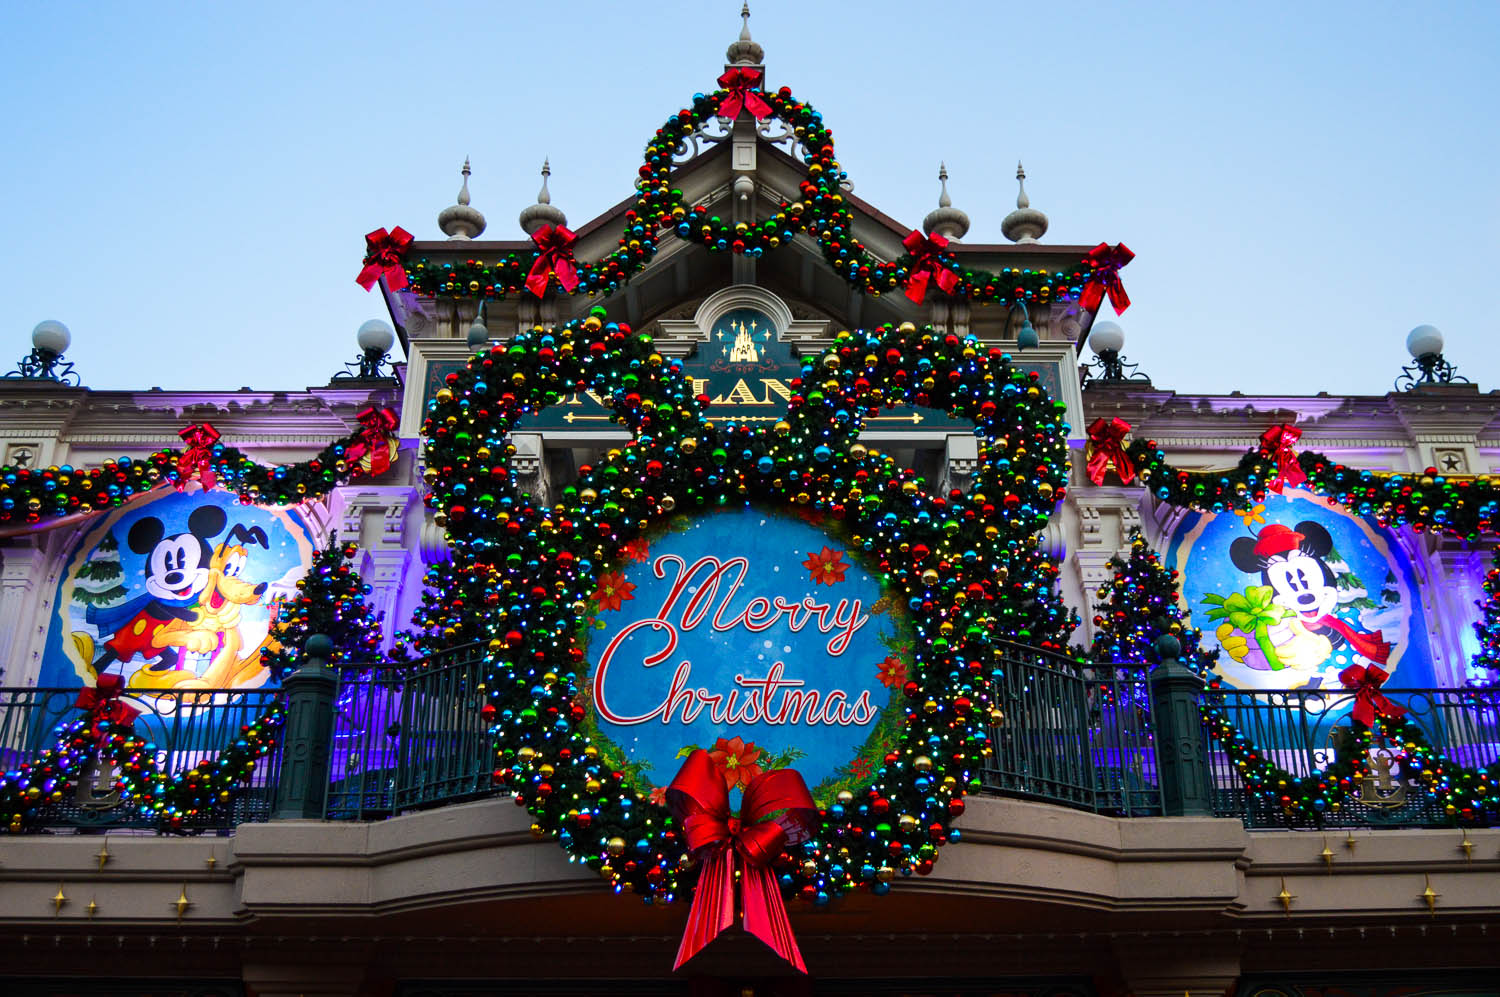 Disneyland Christmas.A Guide To Celebrating Christmas At Disneyland Paris